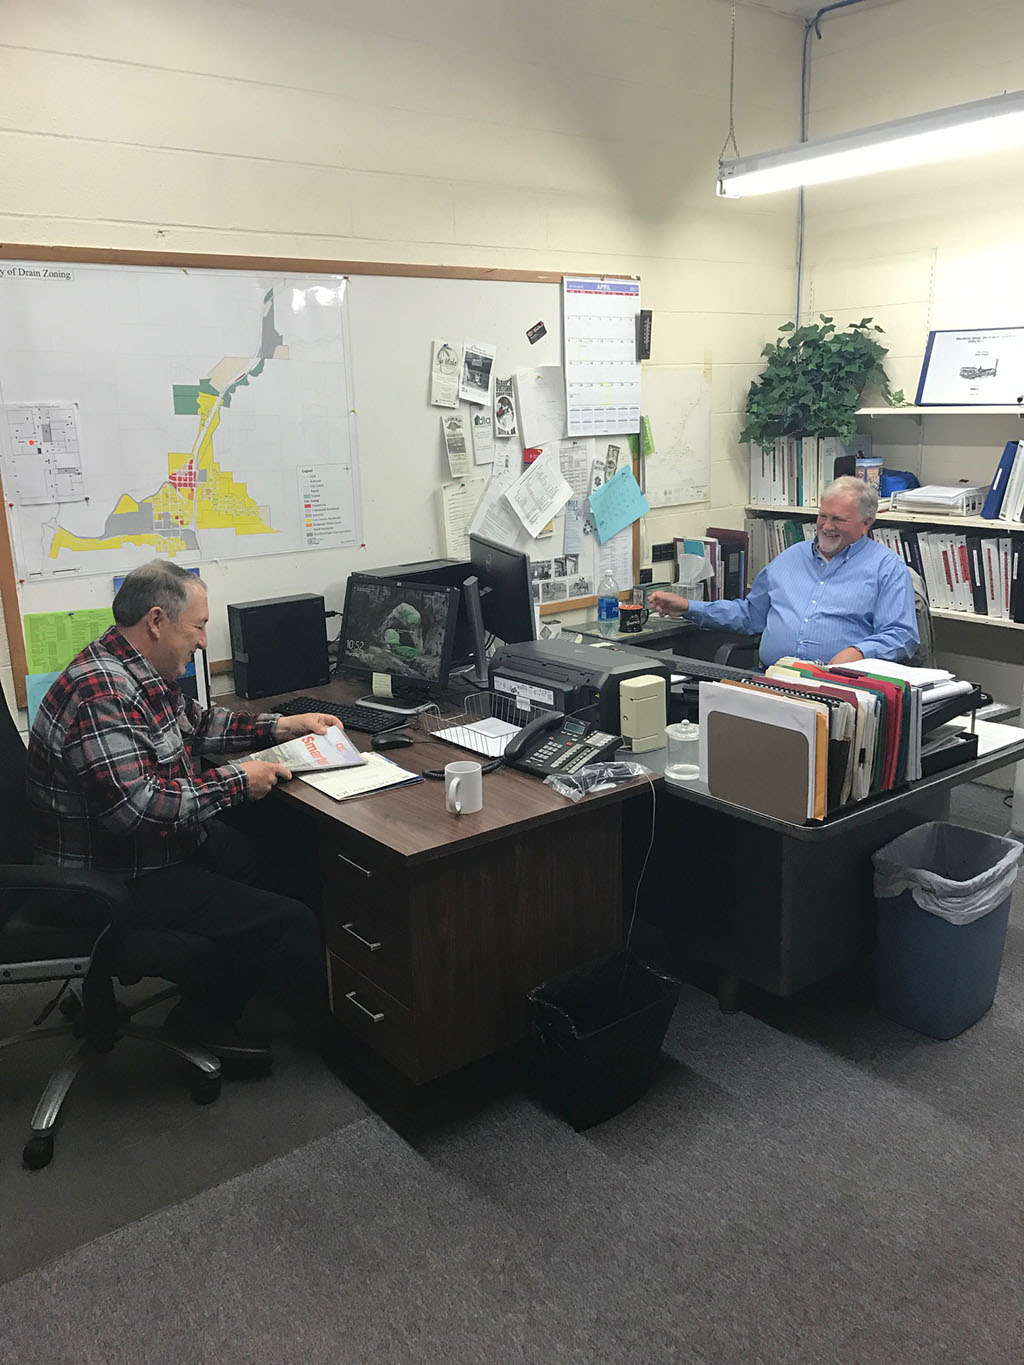 Patenode and Pilley are crafting a 50 year plan for the city of Drain